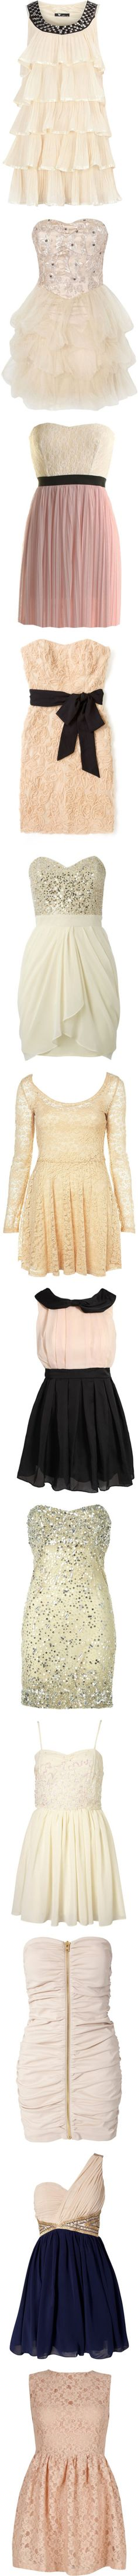 """light, cream colored dresses"" by ellielisette ❤ liked on Polyvore"